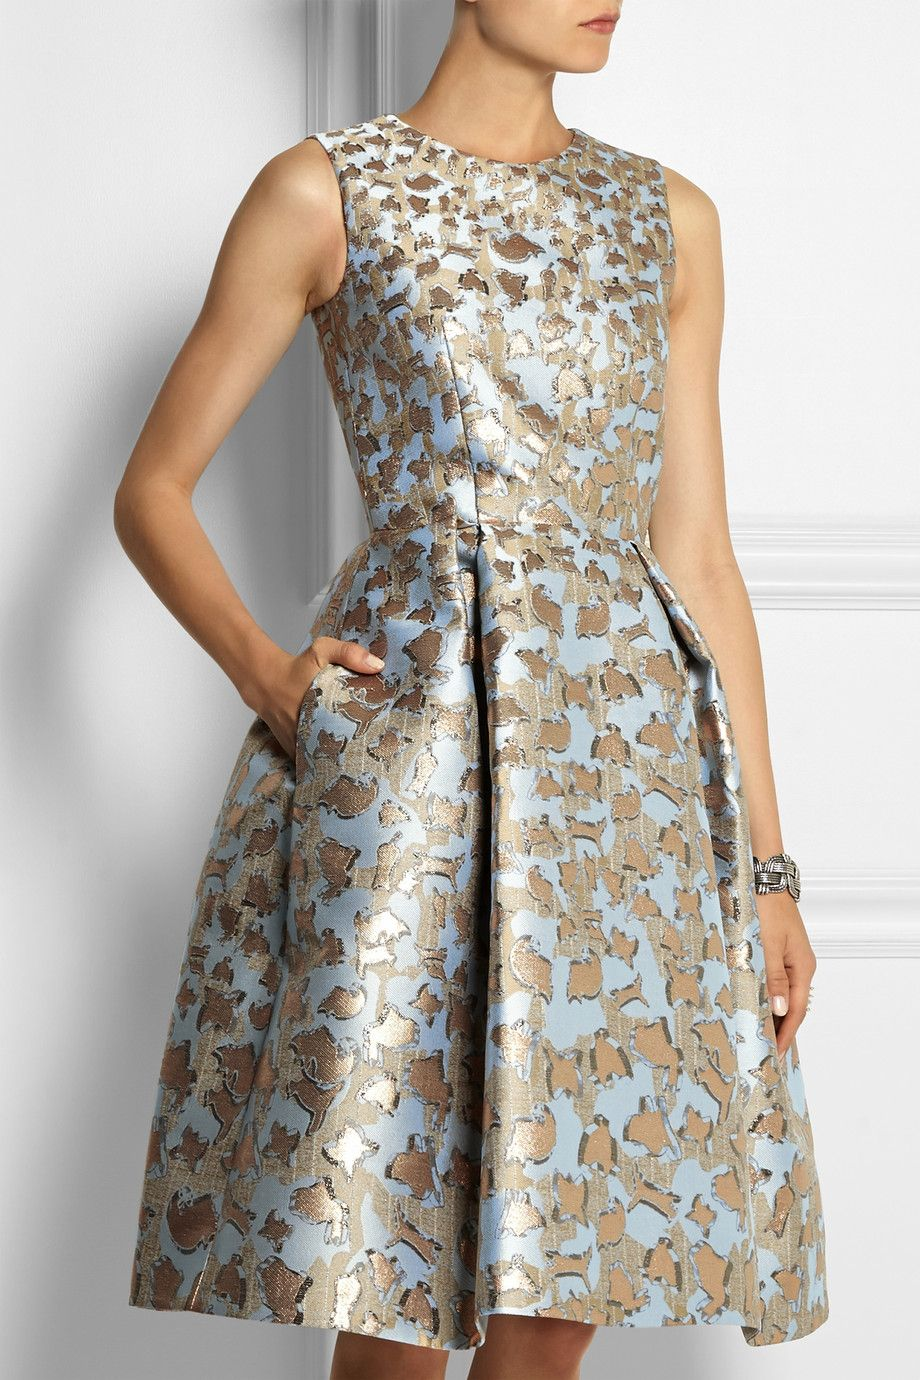 Mary Katrantzou Jq Astere Metallic Jacquard Dress Net